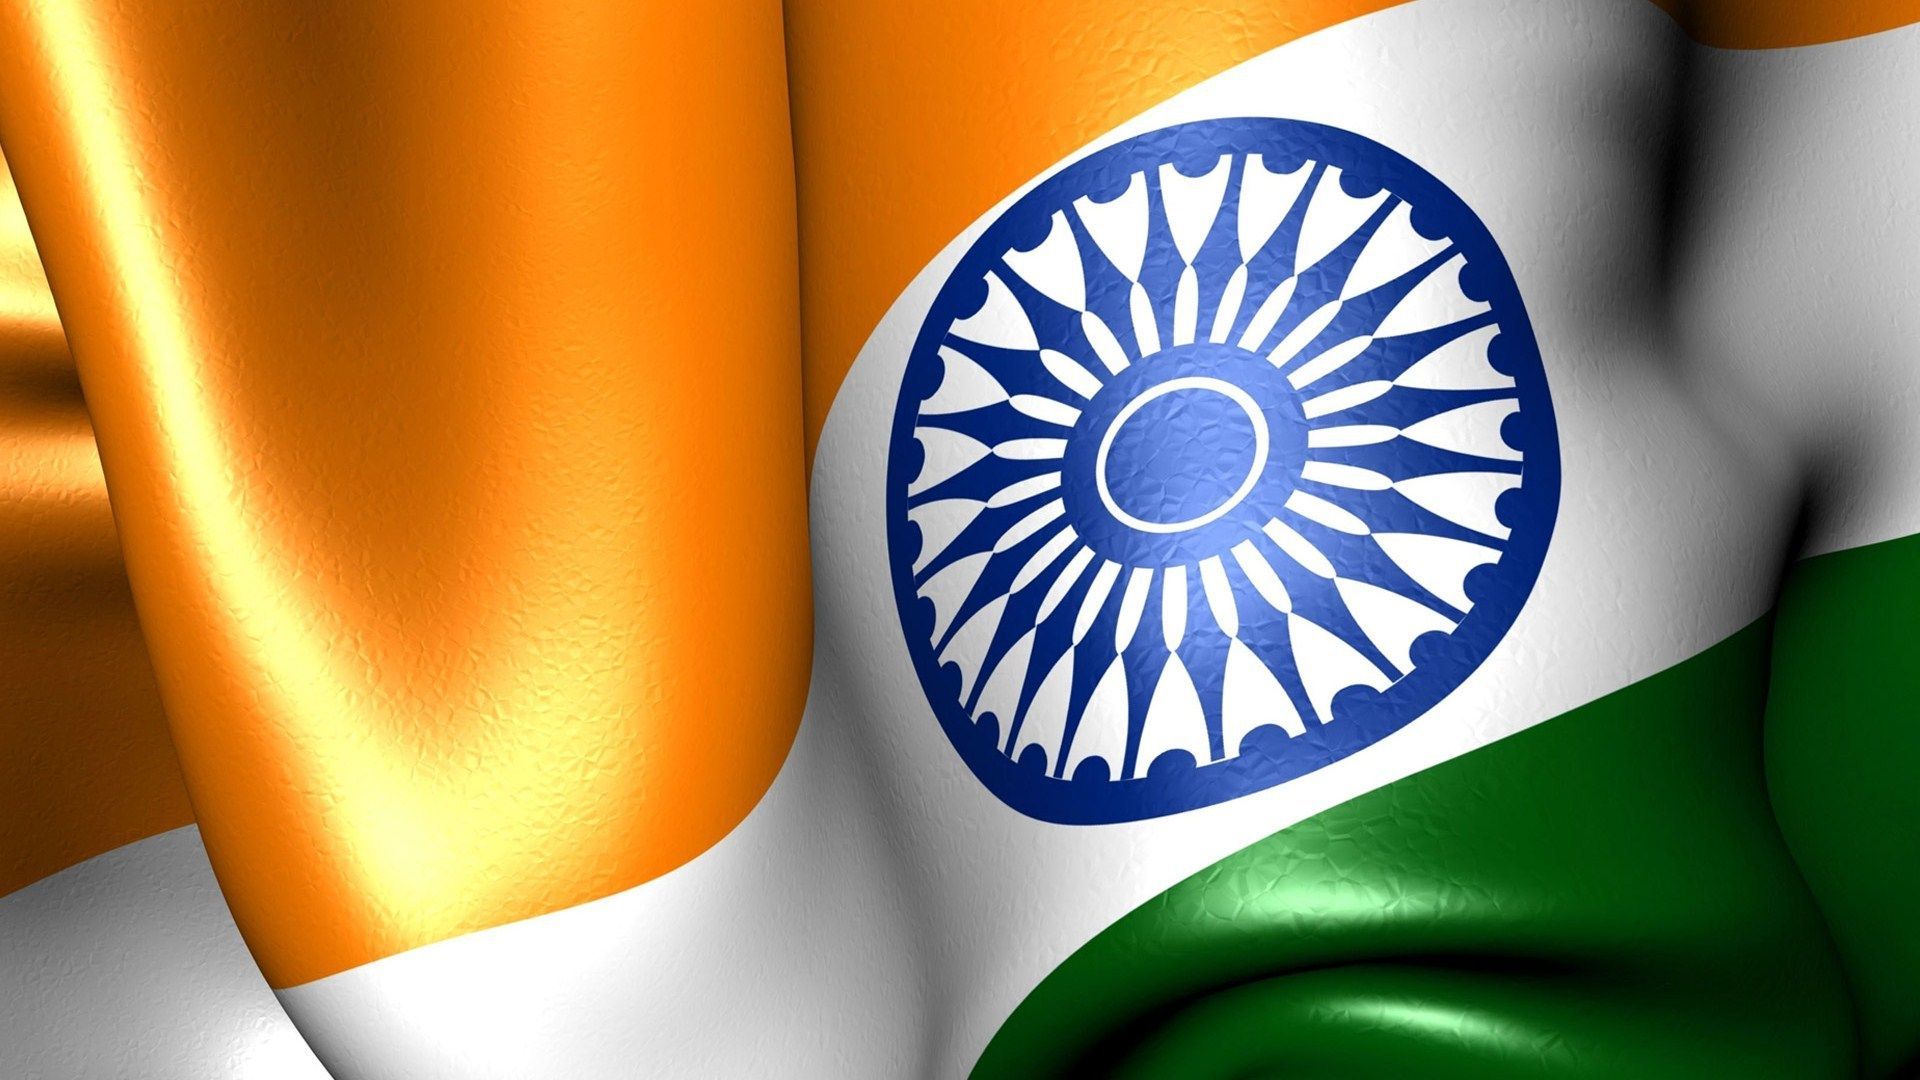 Indian Flag Images Hd720p: Pin By Gajanan Sangolkar On India